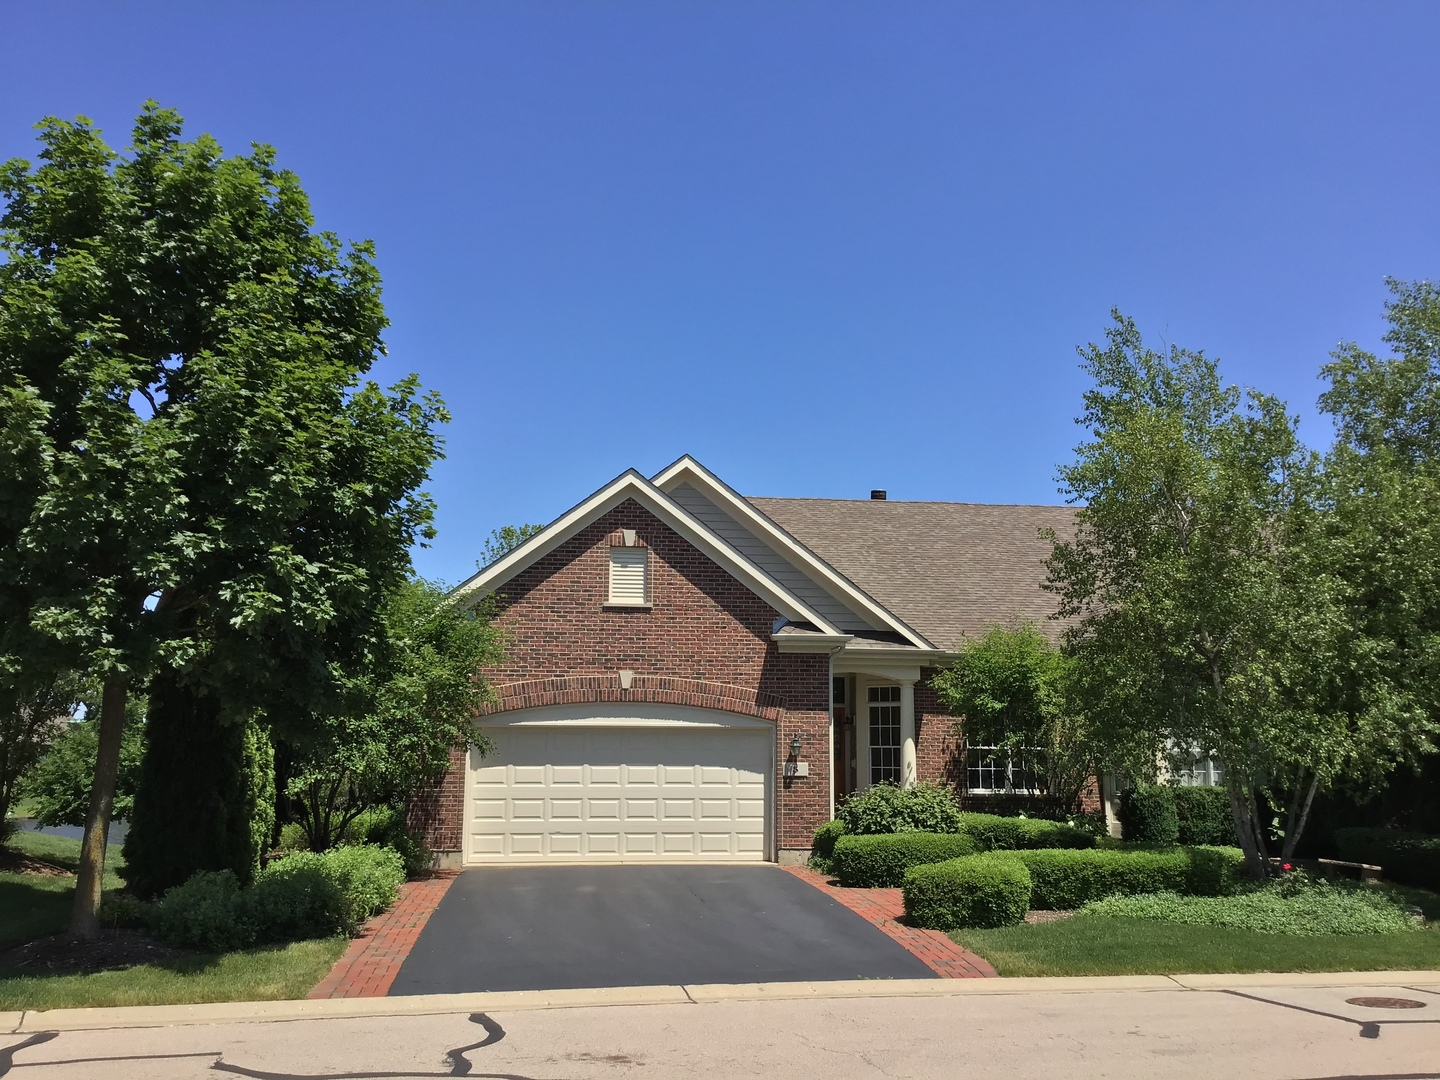 Photo for 5 Sugar Maple Court, Lake In The Hills, IL 60156 (MLS # 10566161)